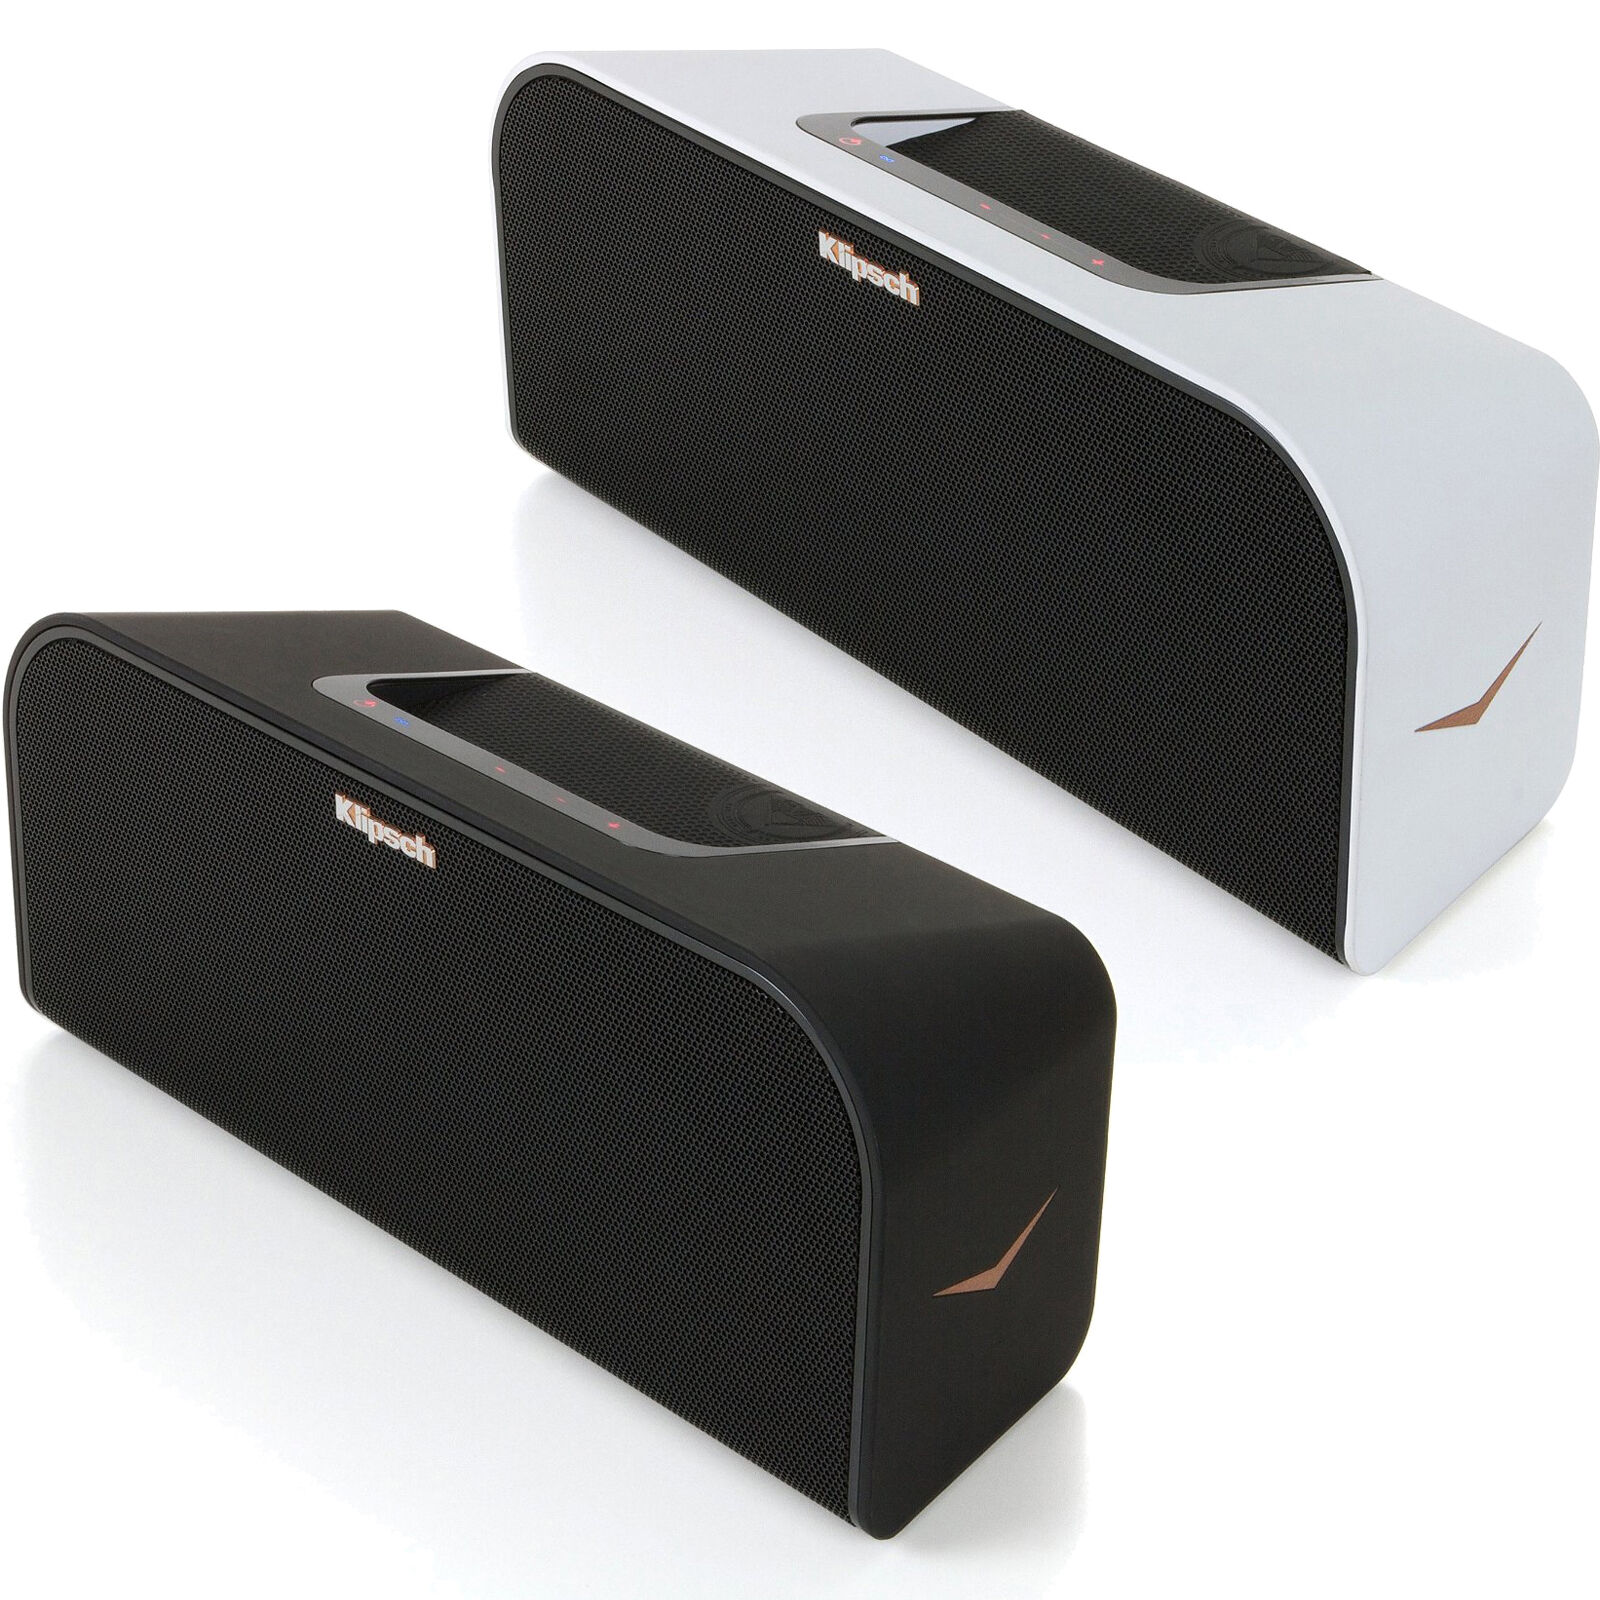 Изображение товара Klipsch KMC3 Wireless Bluetooth Portable Music System - Choose Your Color